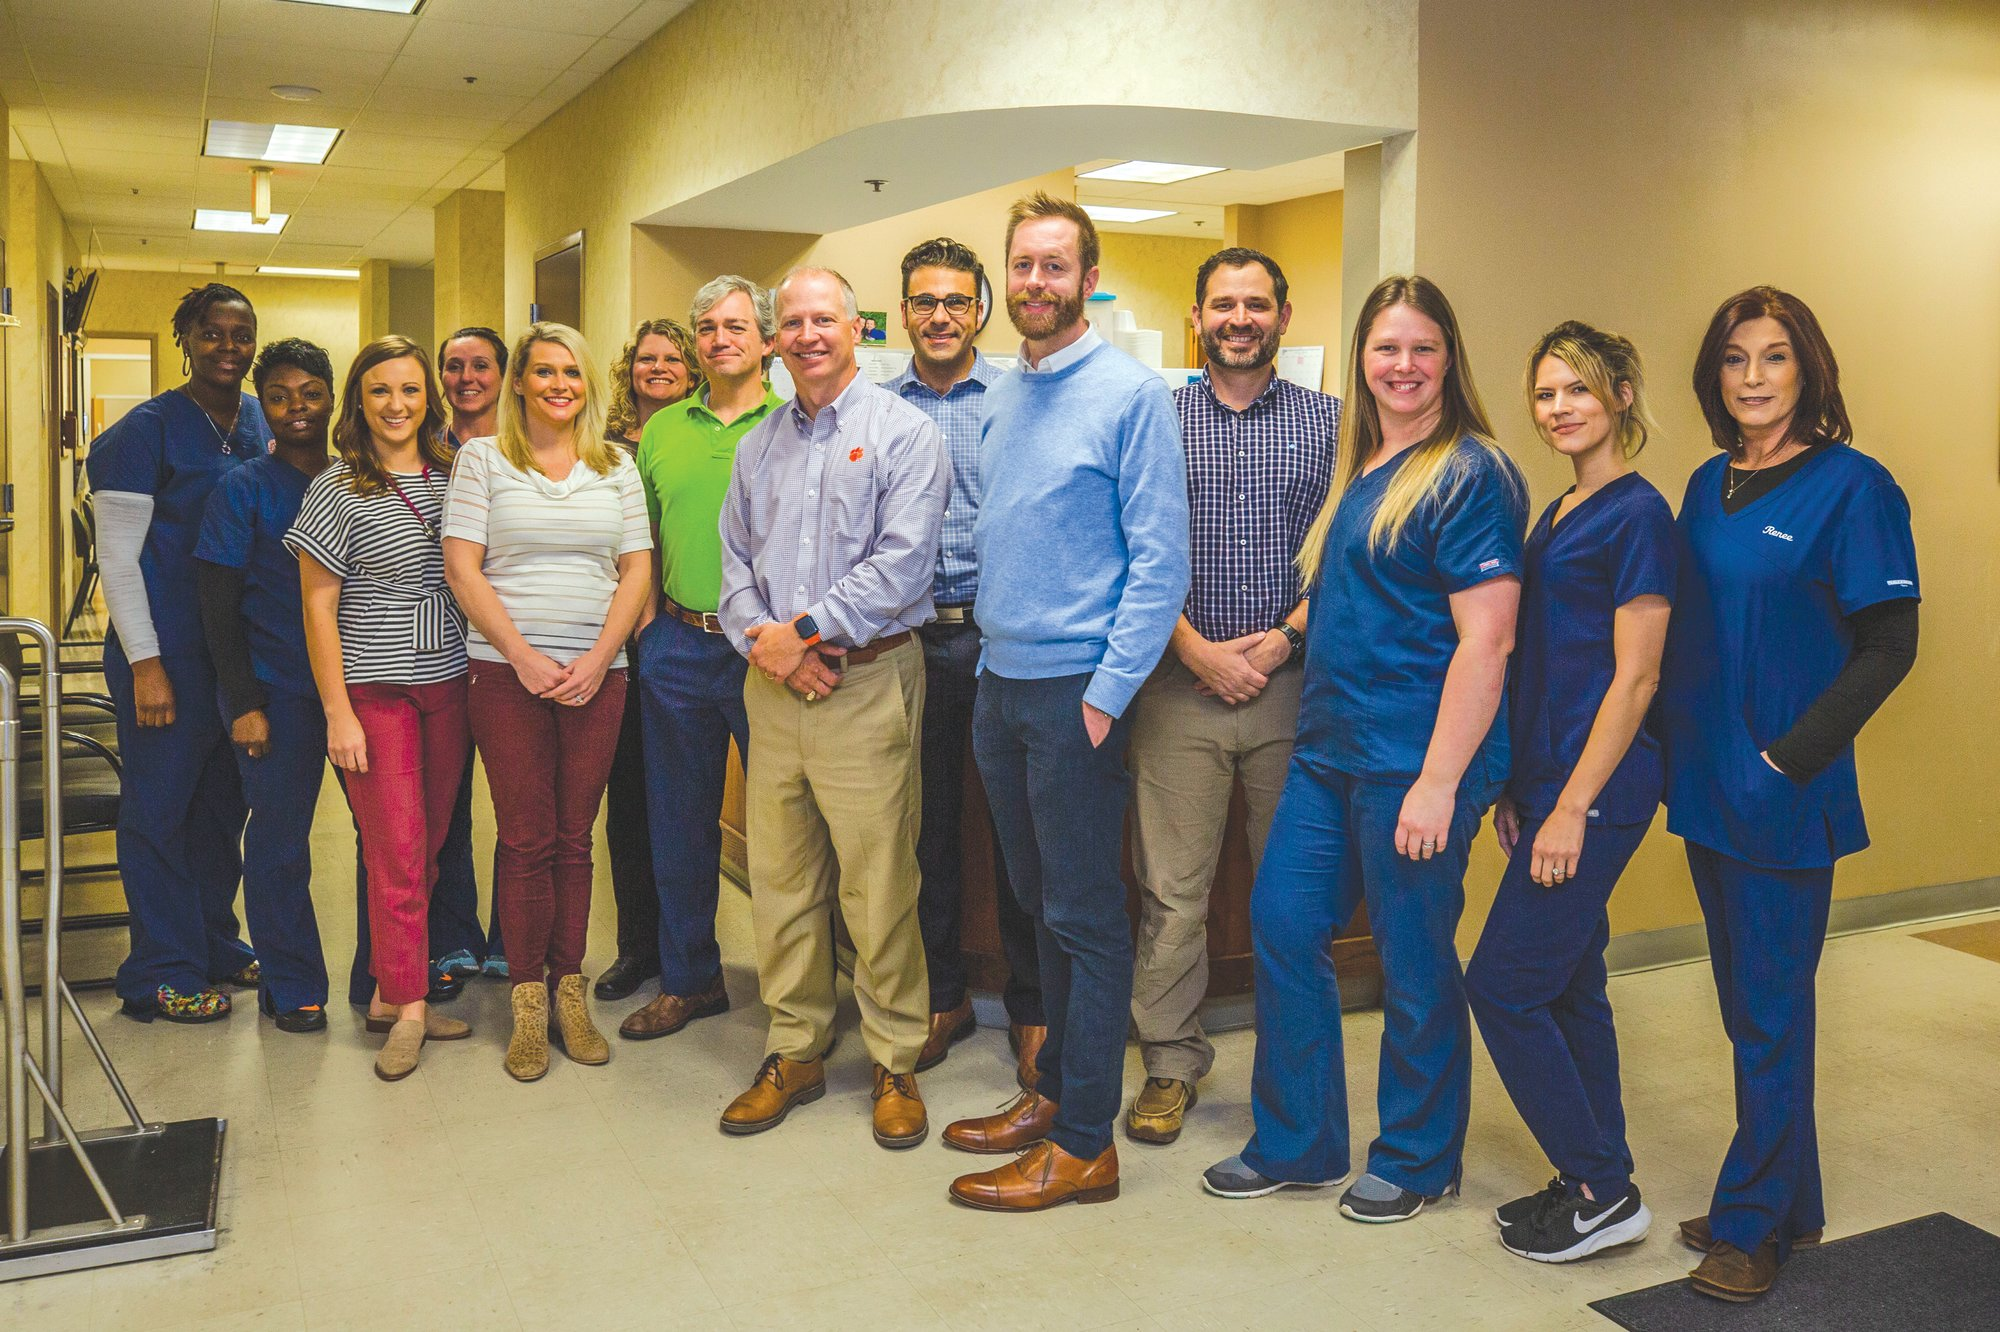 Colonial Healthcare originally started as Lowder Family Practice in 1996. The practice now has about 331 total employees at 12 current facilities in Sumter and Manning.